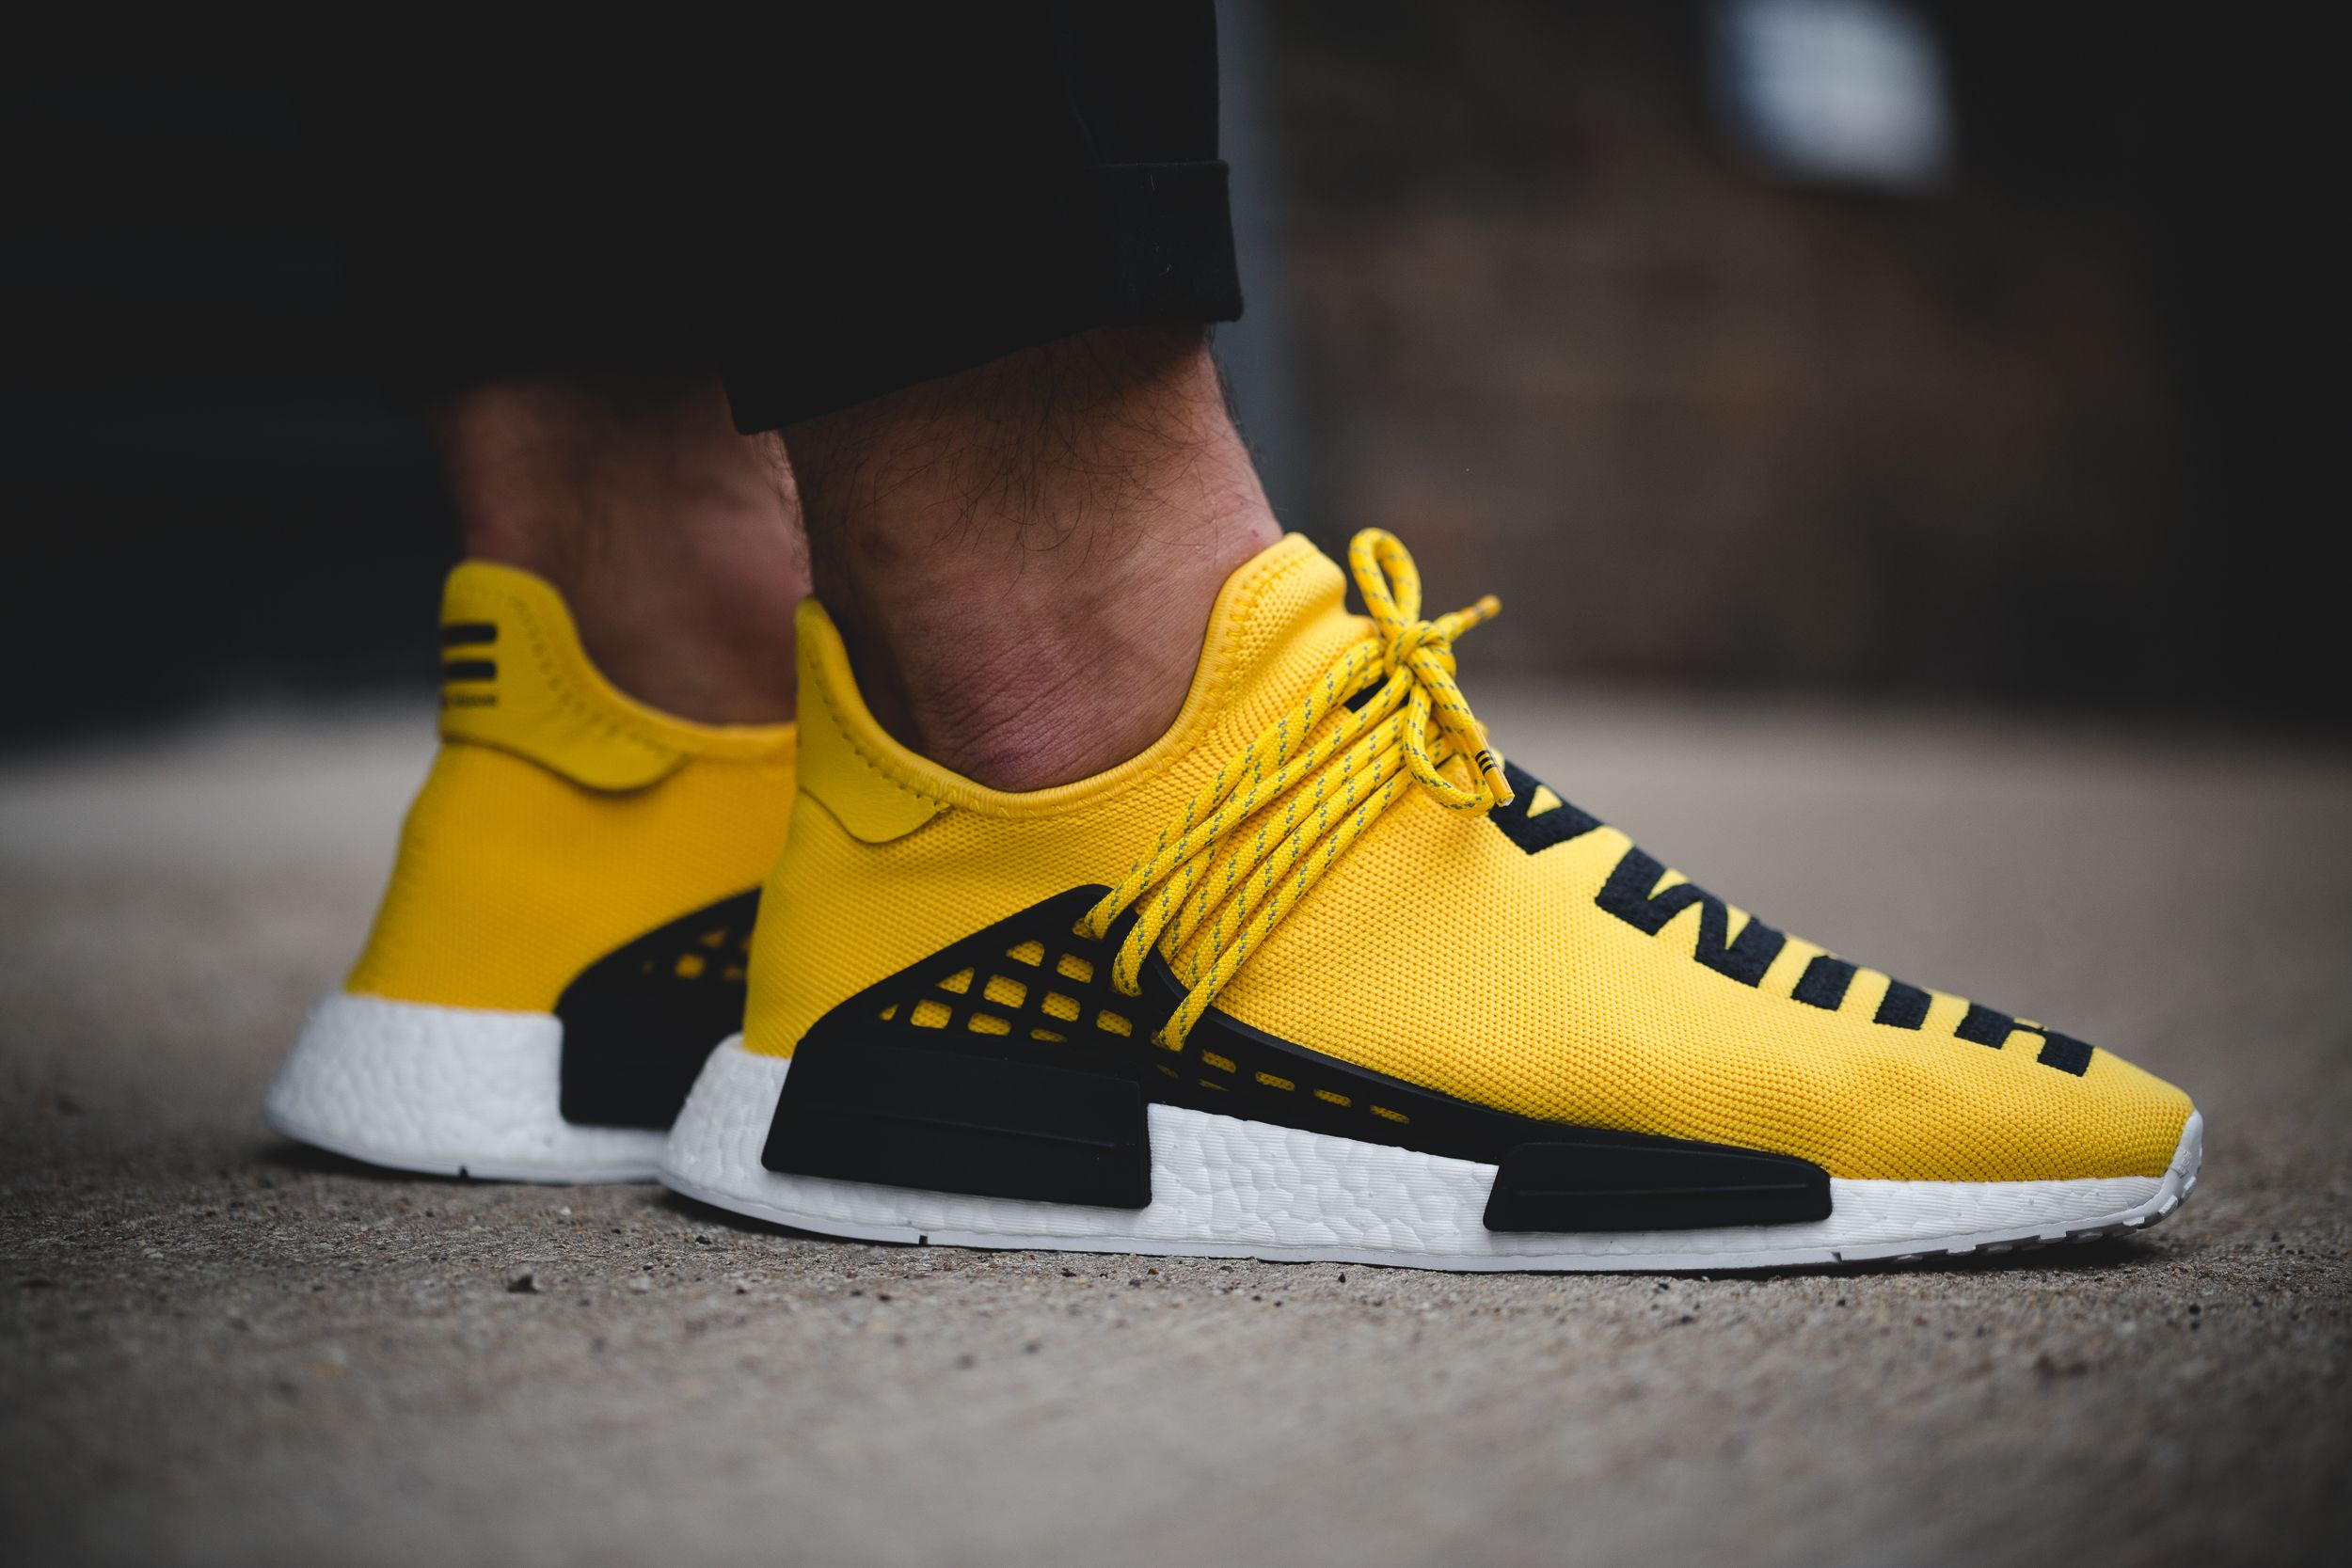 reputable site 25b4f 603c9 Pharrell Williams x adidas NMD 'Human Race' Releases 22.07 ...